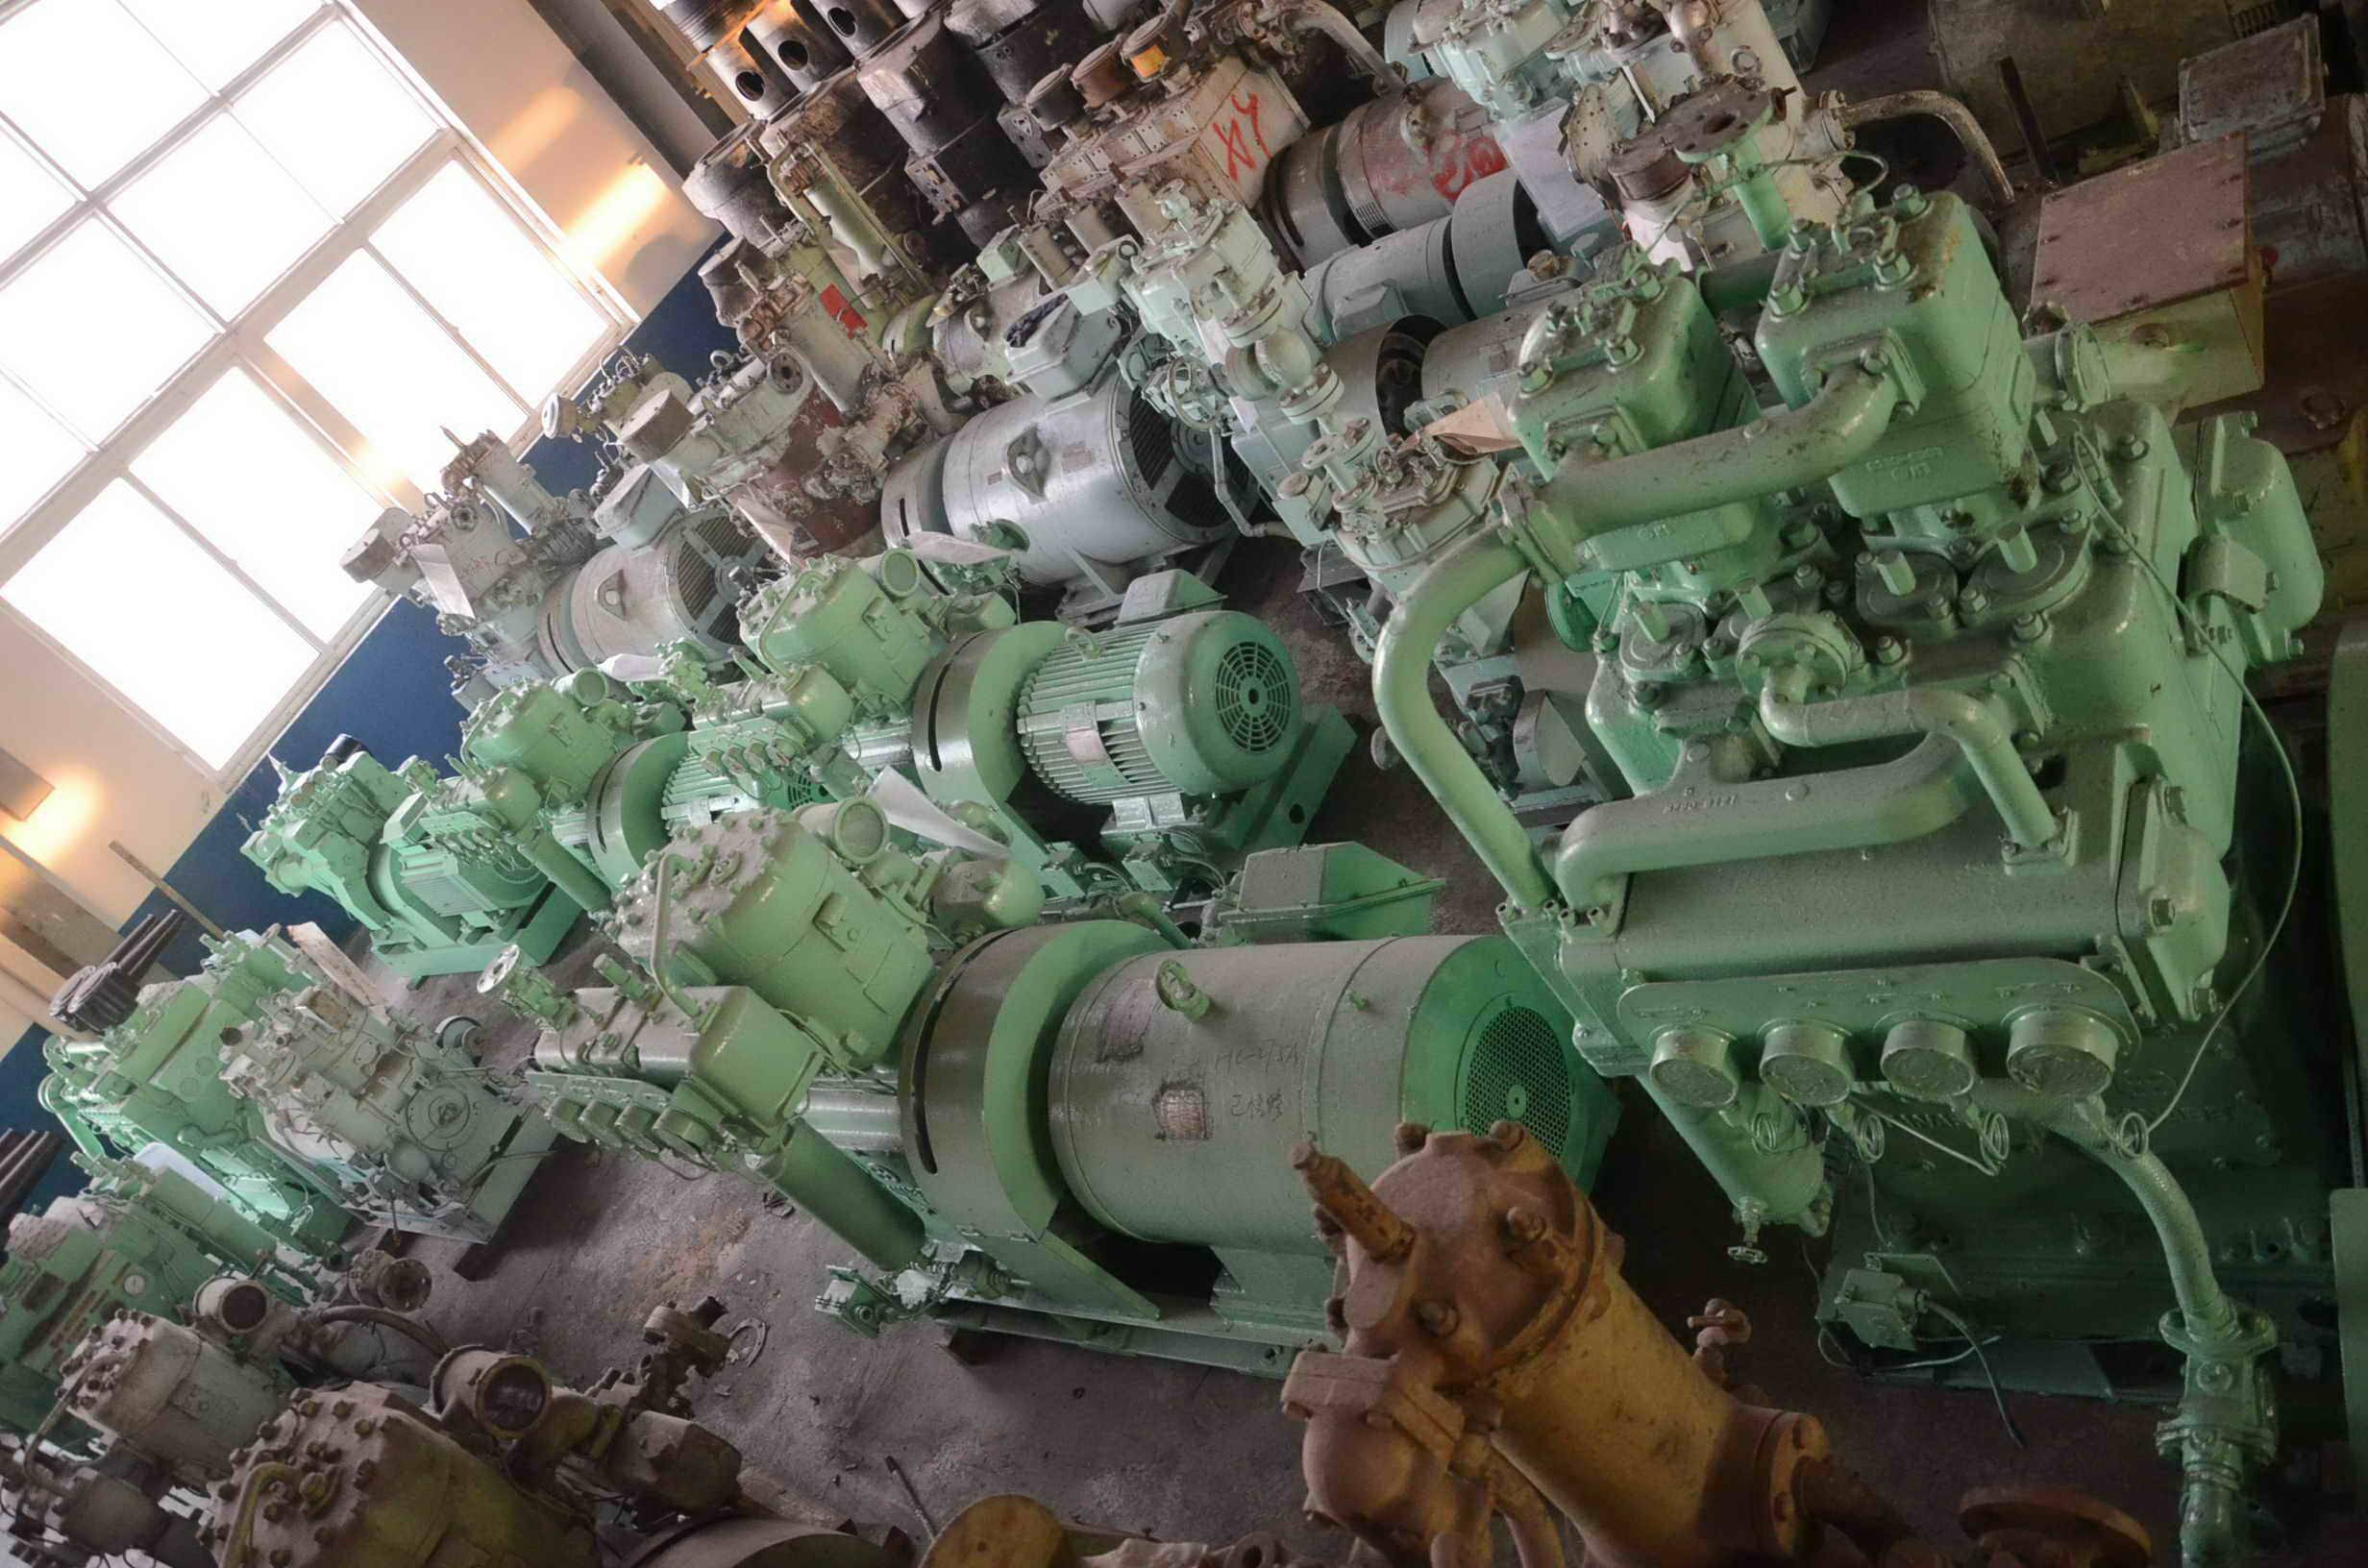 SINO-OCEAN MARINE HAS AIR COMPRESSOR FOR SALE